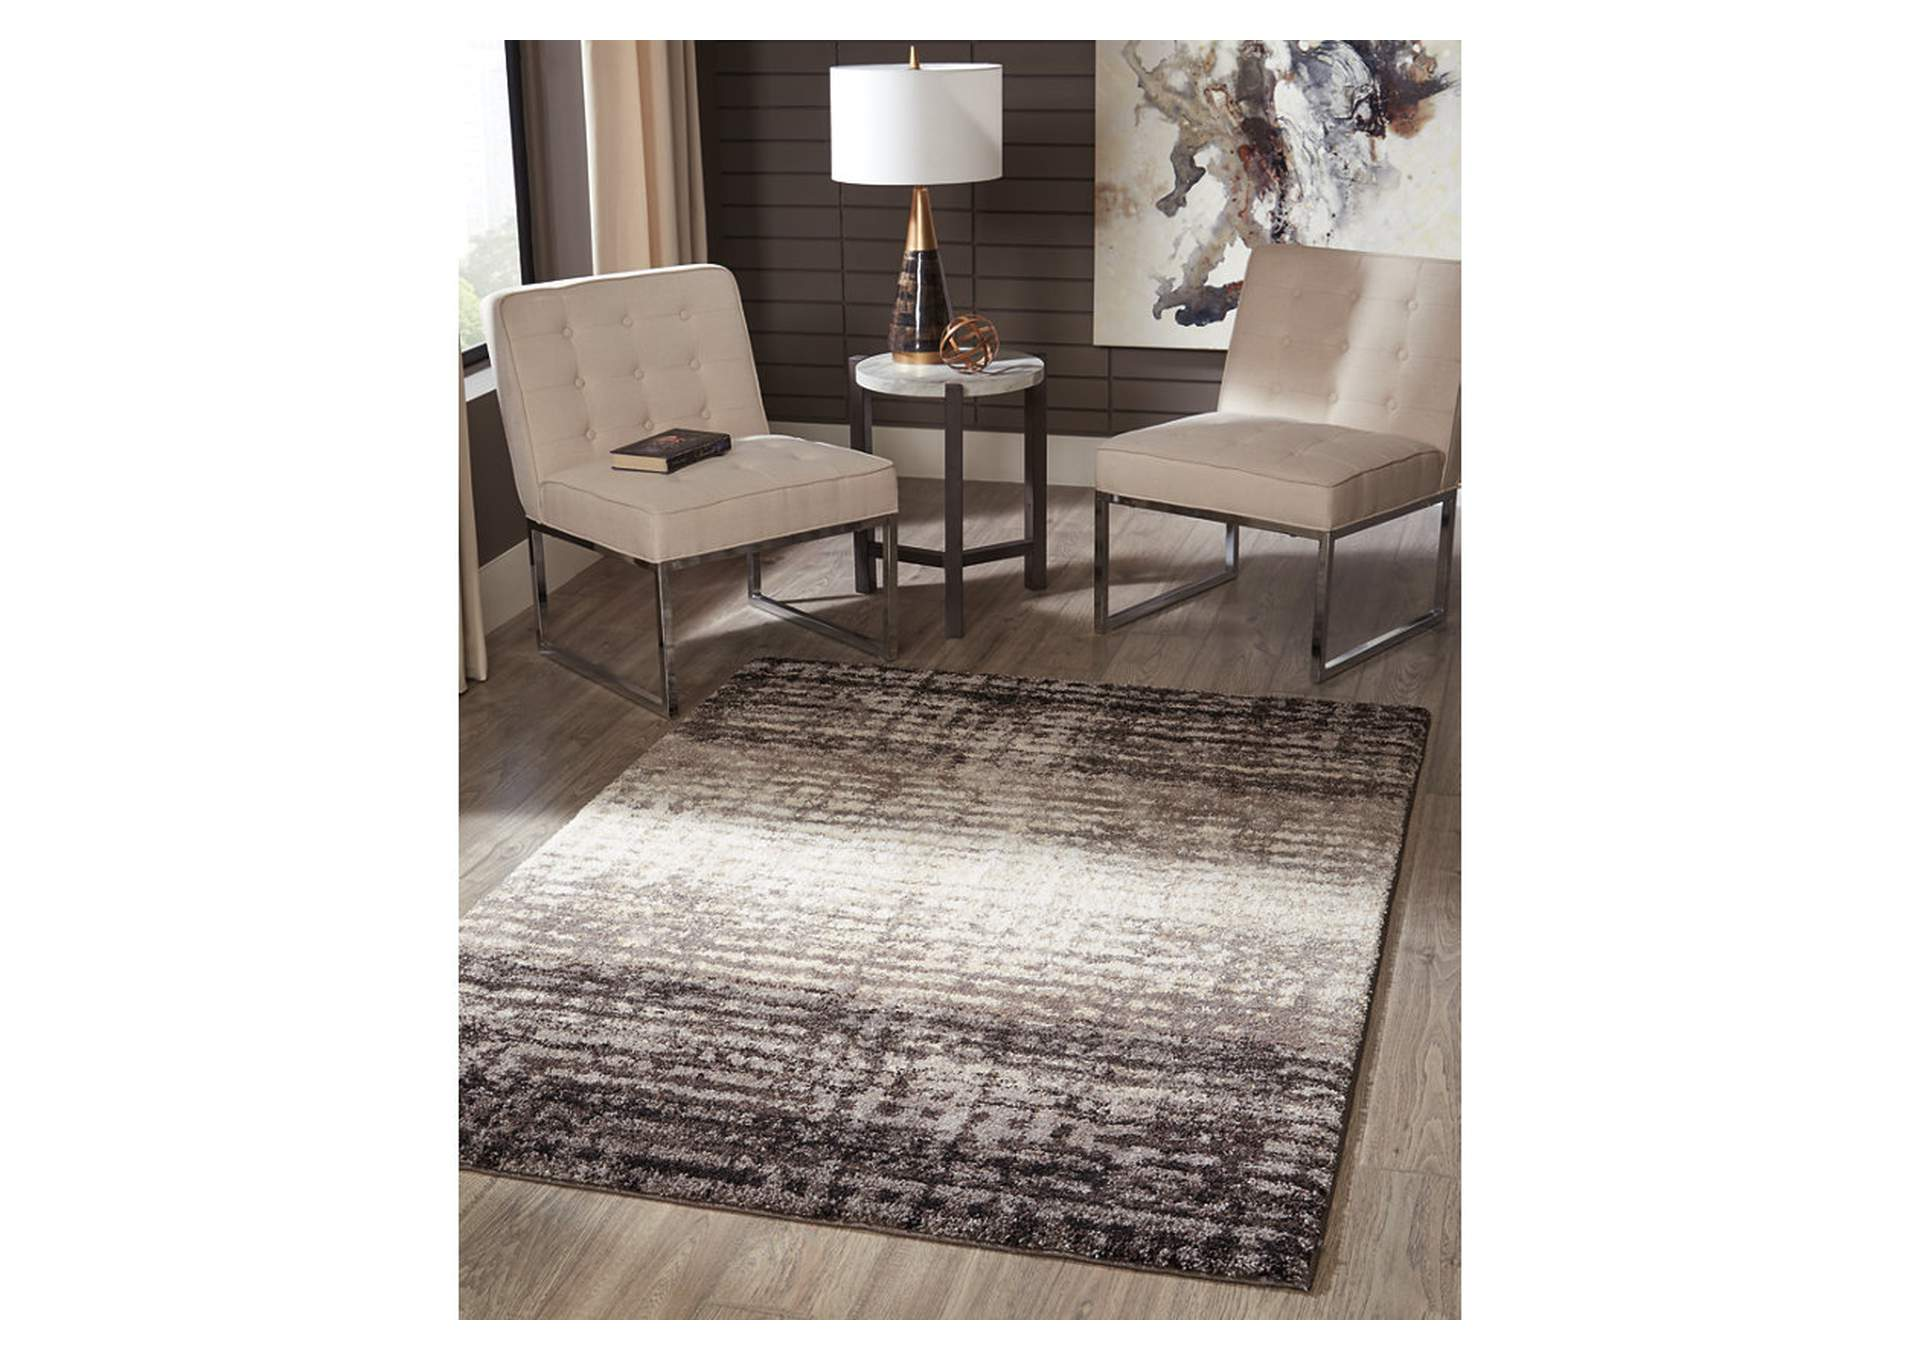 Marleisha Black Large Rug,Signature Design By Ashley